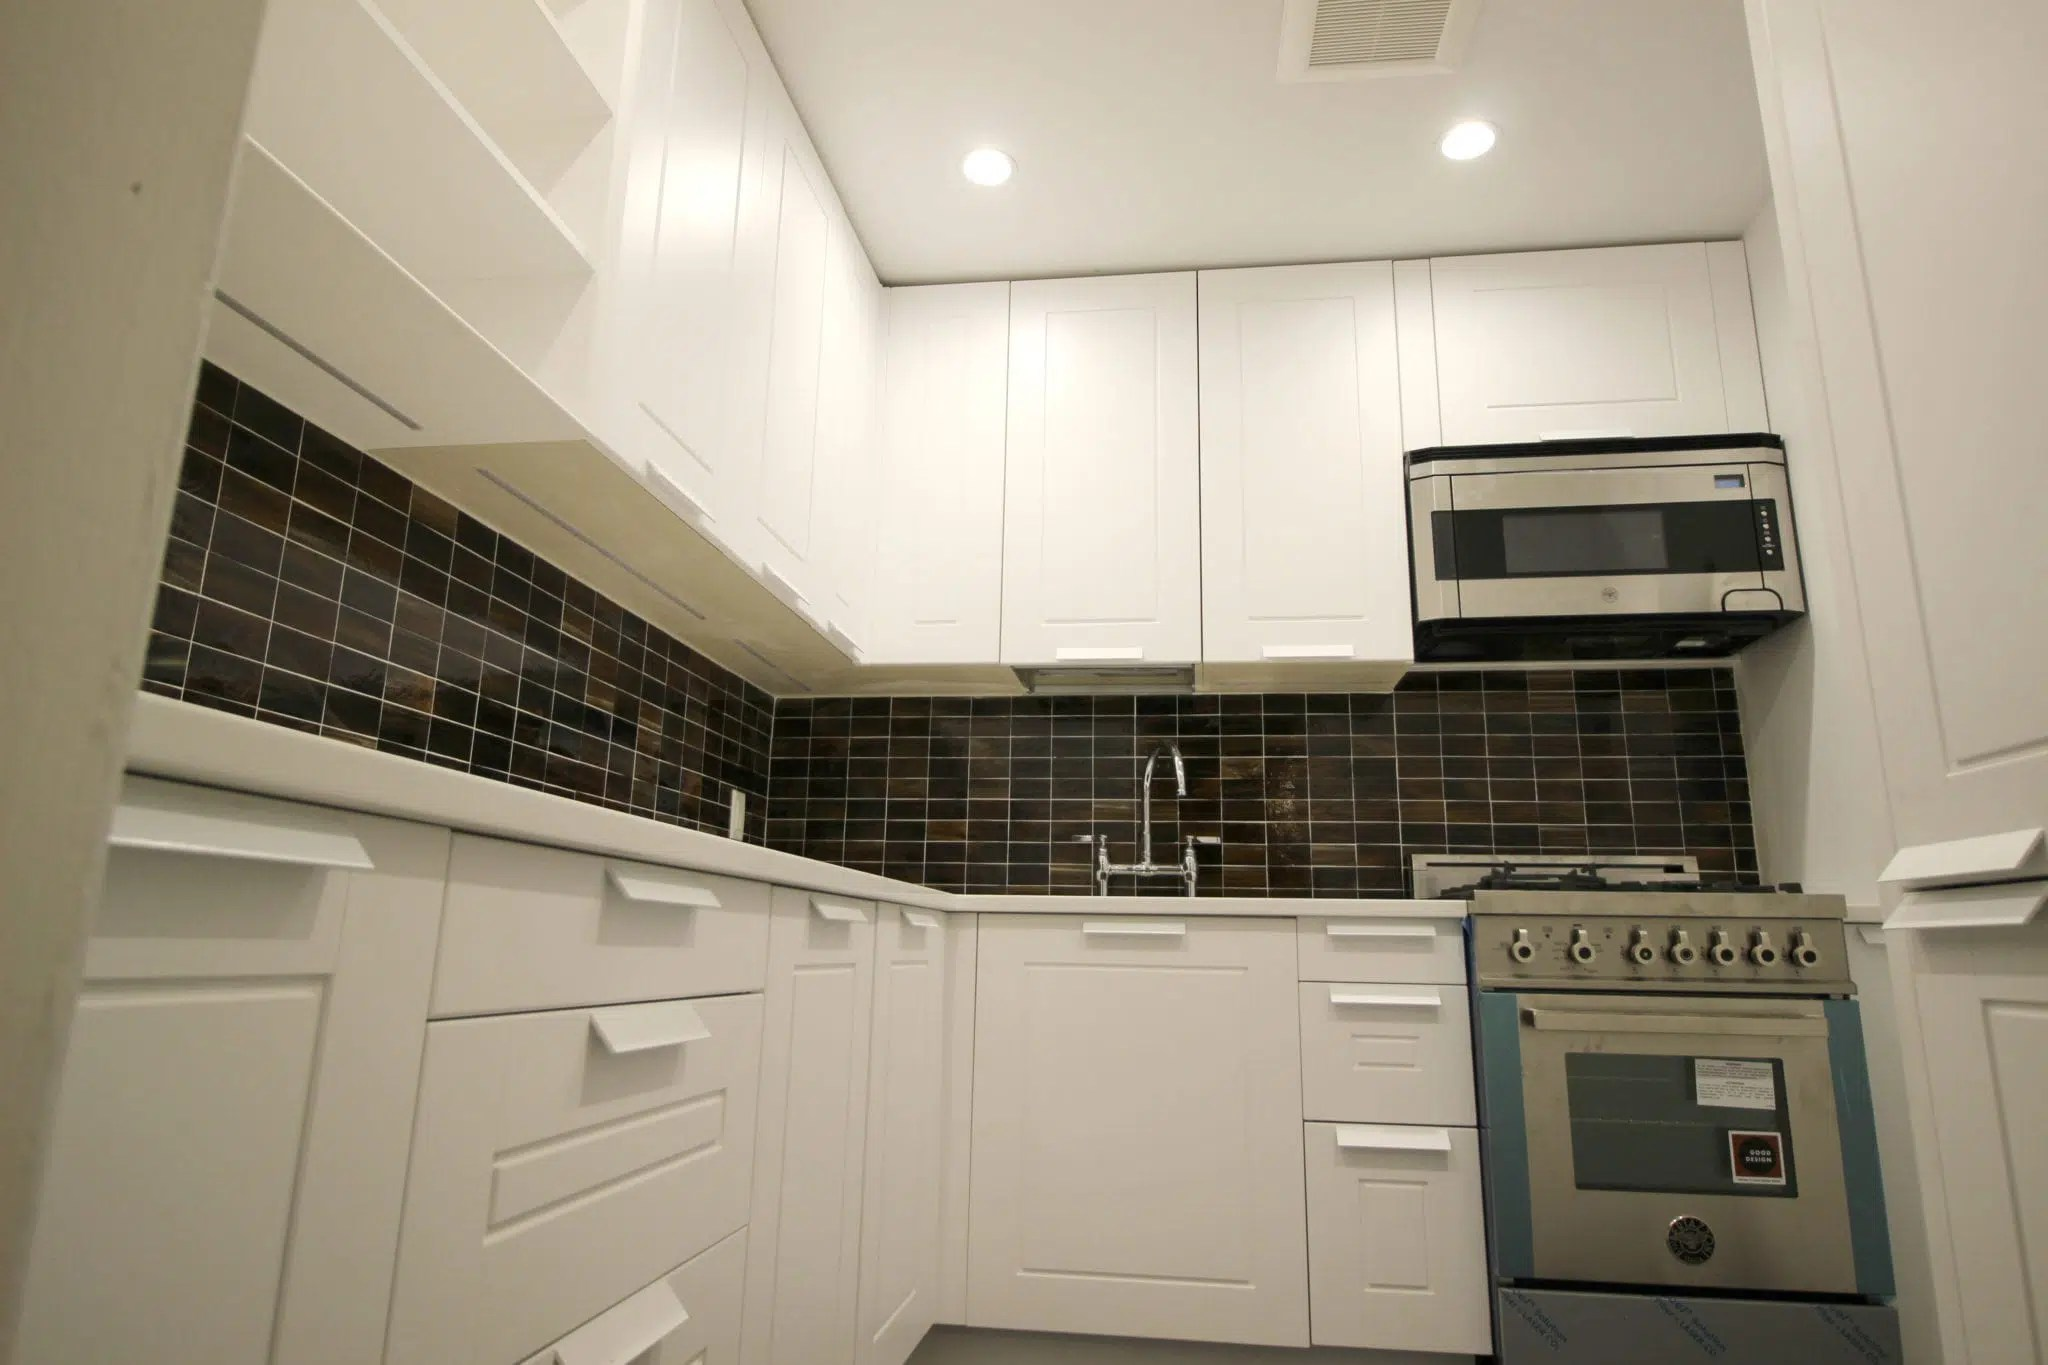 European Kitchen Cabinets Brooklyn Ny Transitional Kitchen In White Lacquer Shaker Nyc